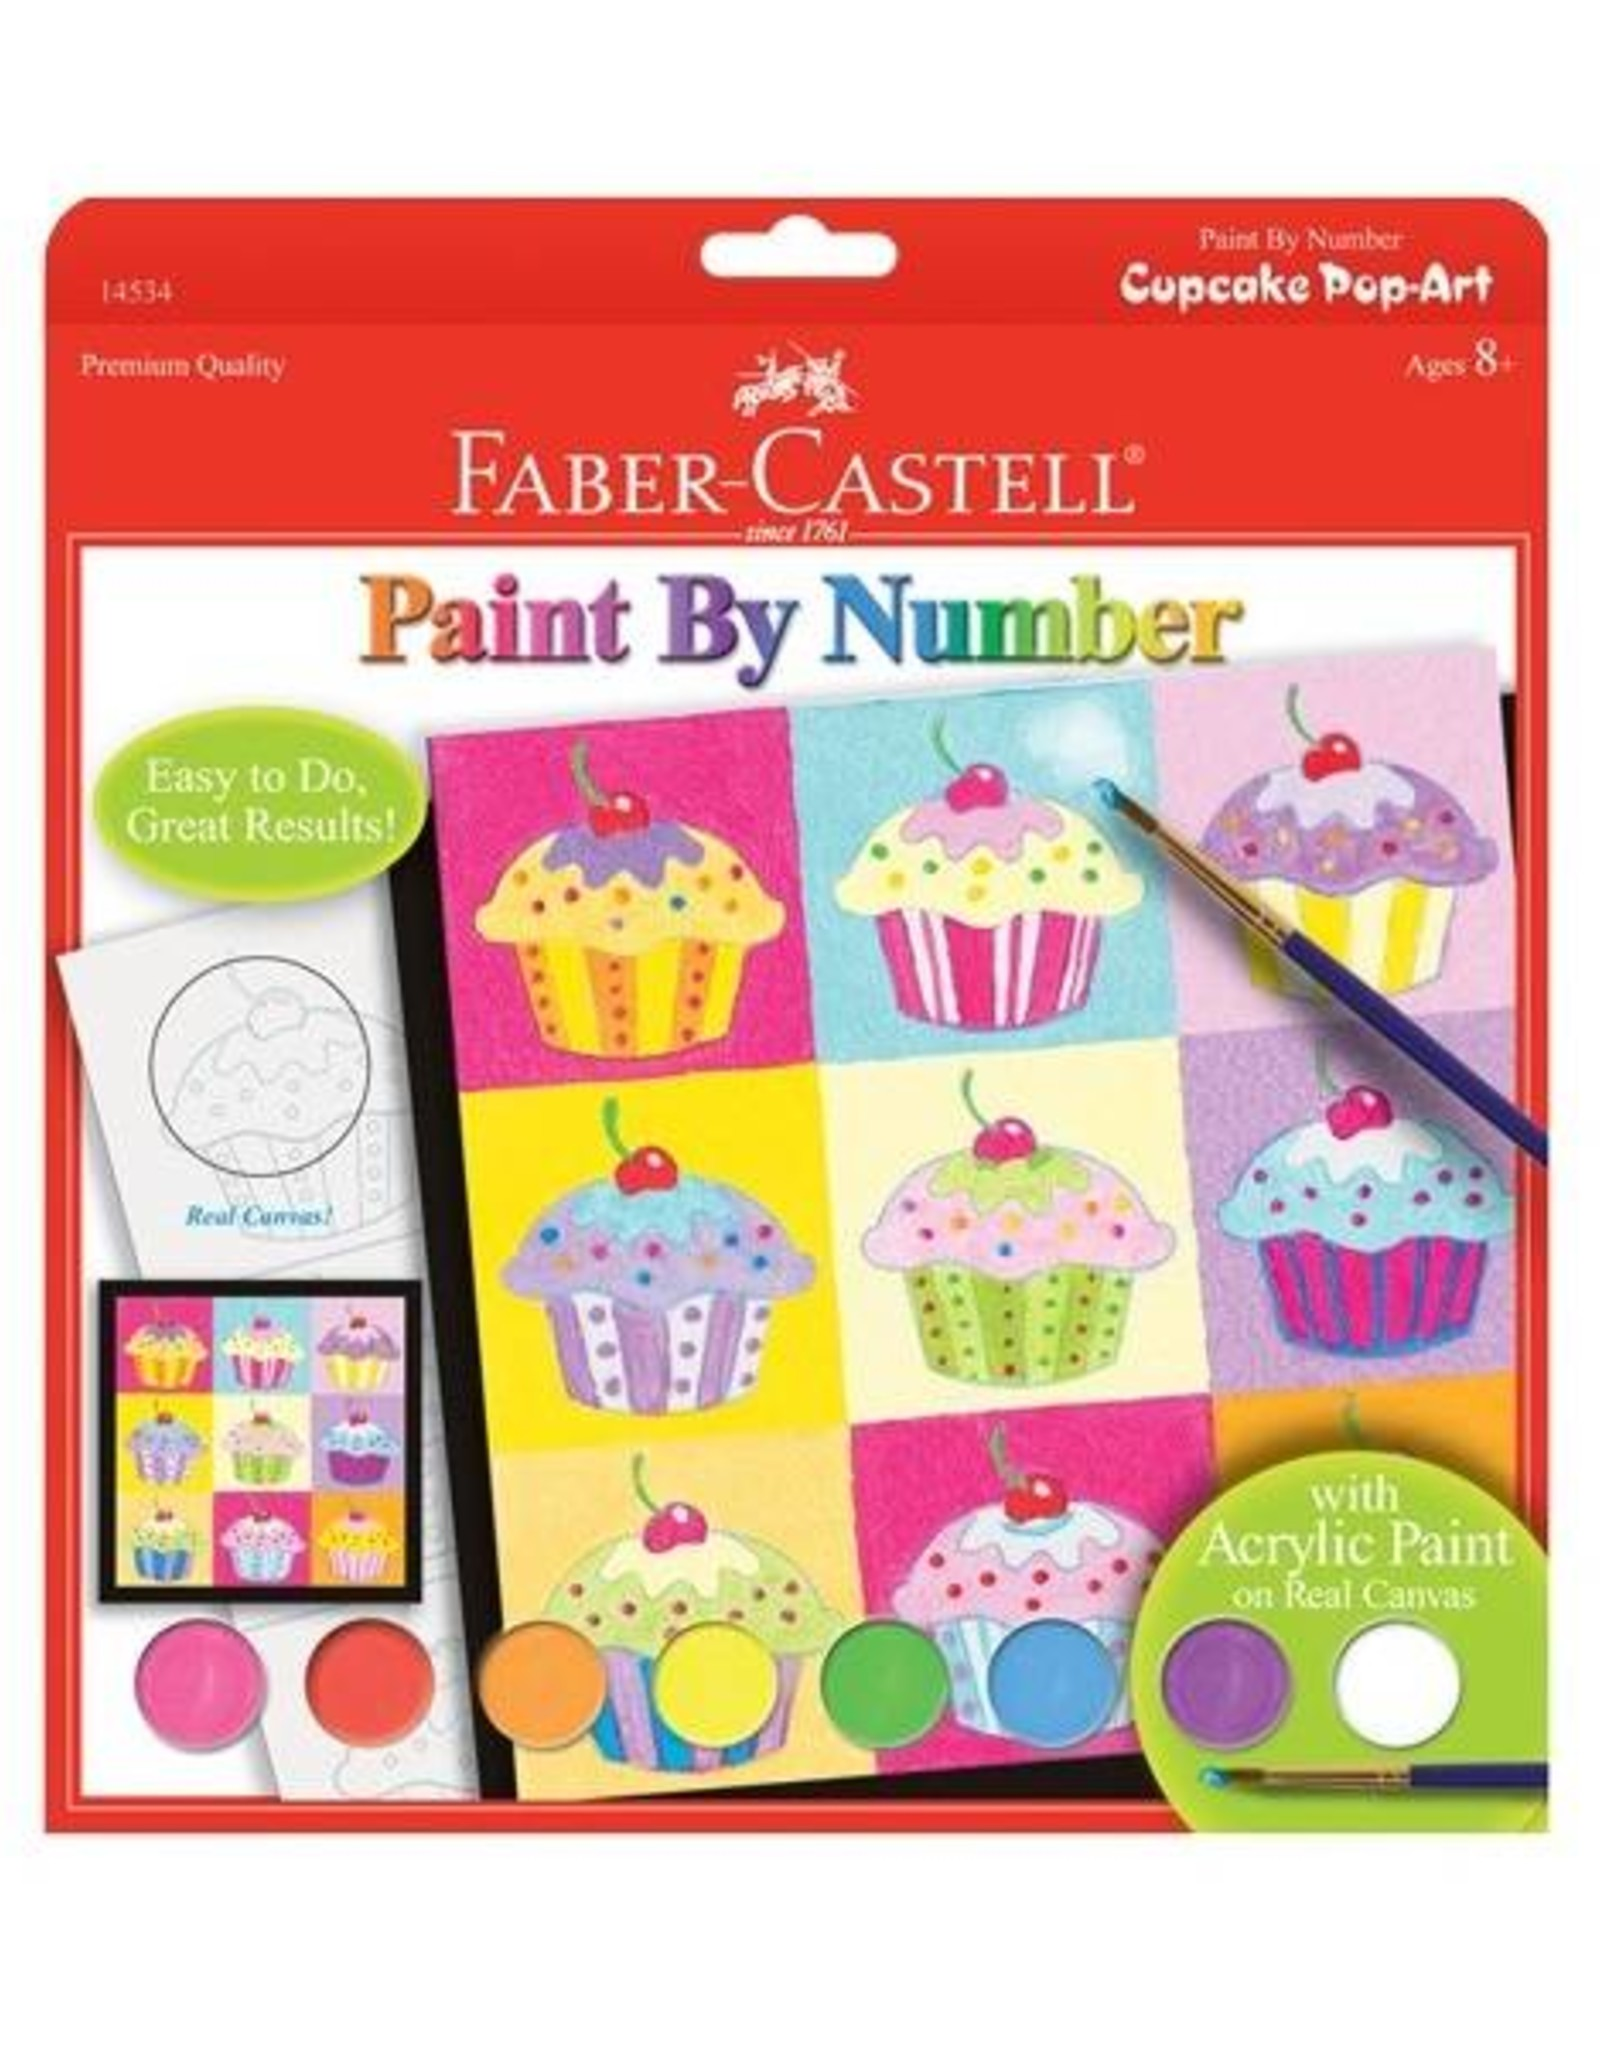 Faber Castell Paint By Number Cupcake Pop-Art